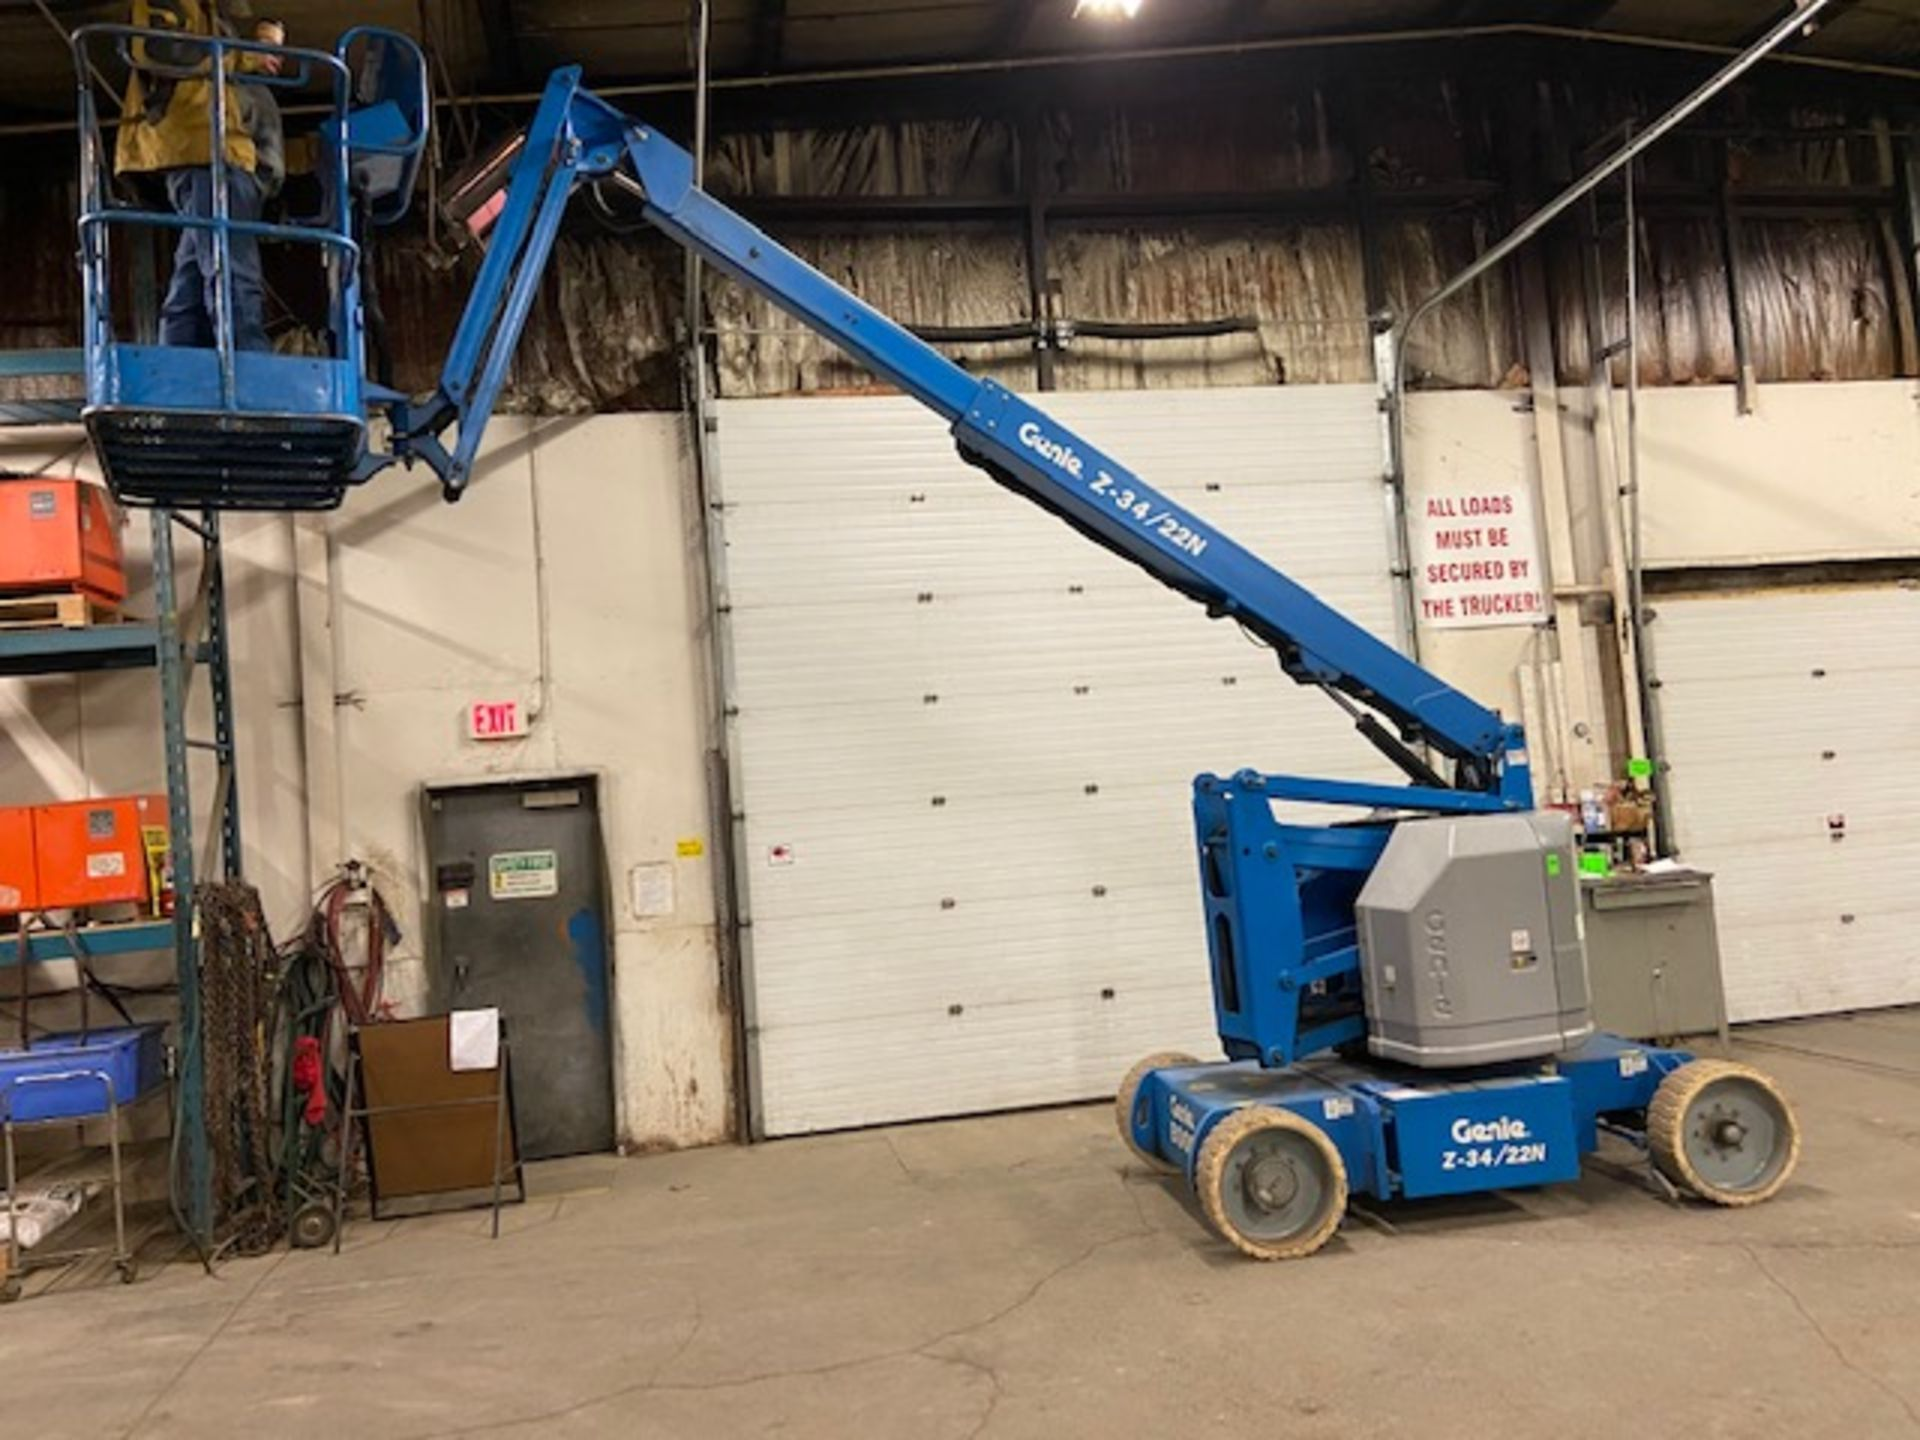 MINT 2005 Genie Boom Lift model Z-34/22N with 34' high with LOW hours ELECTRIC - Image 3 of 4